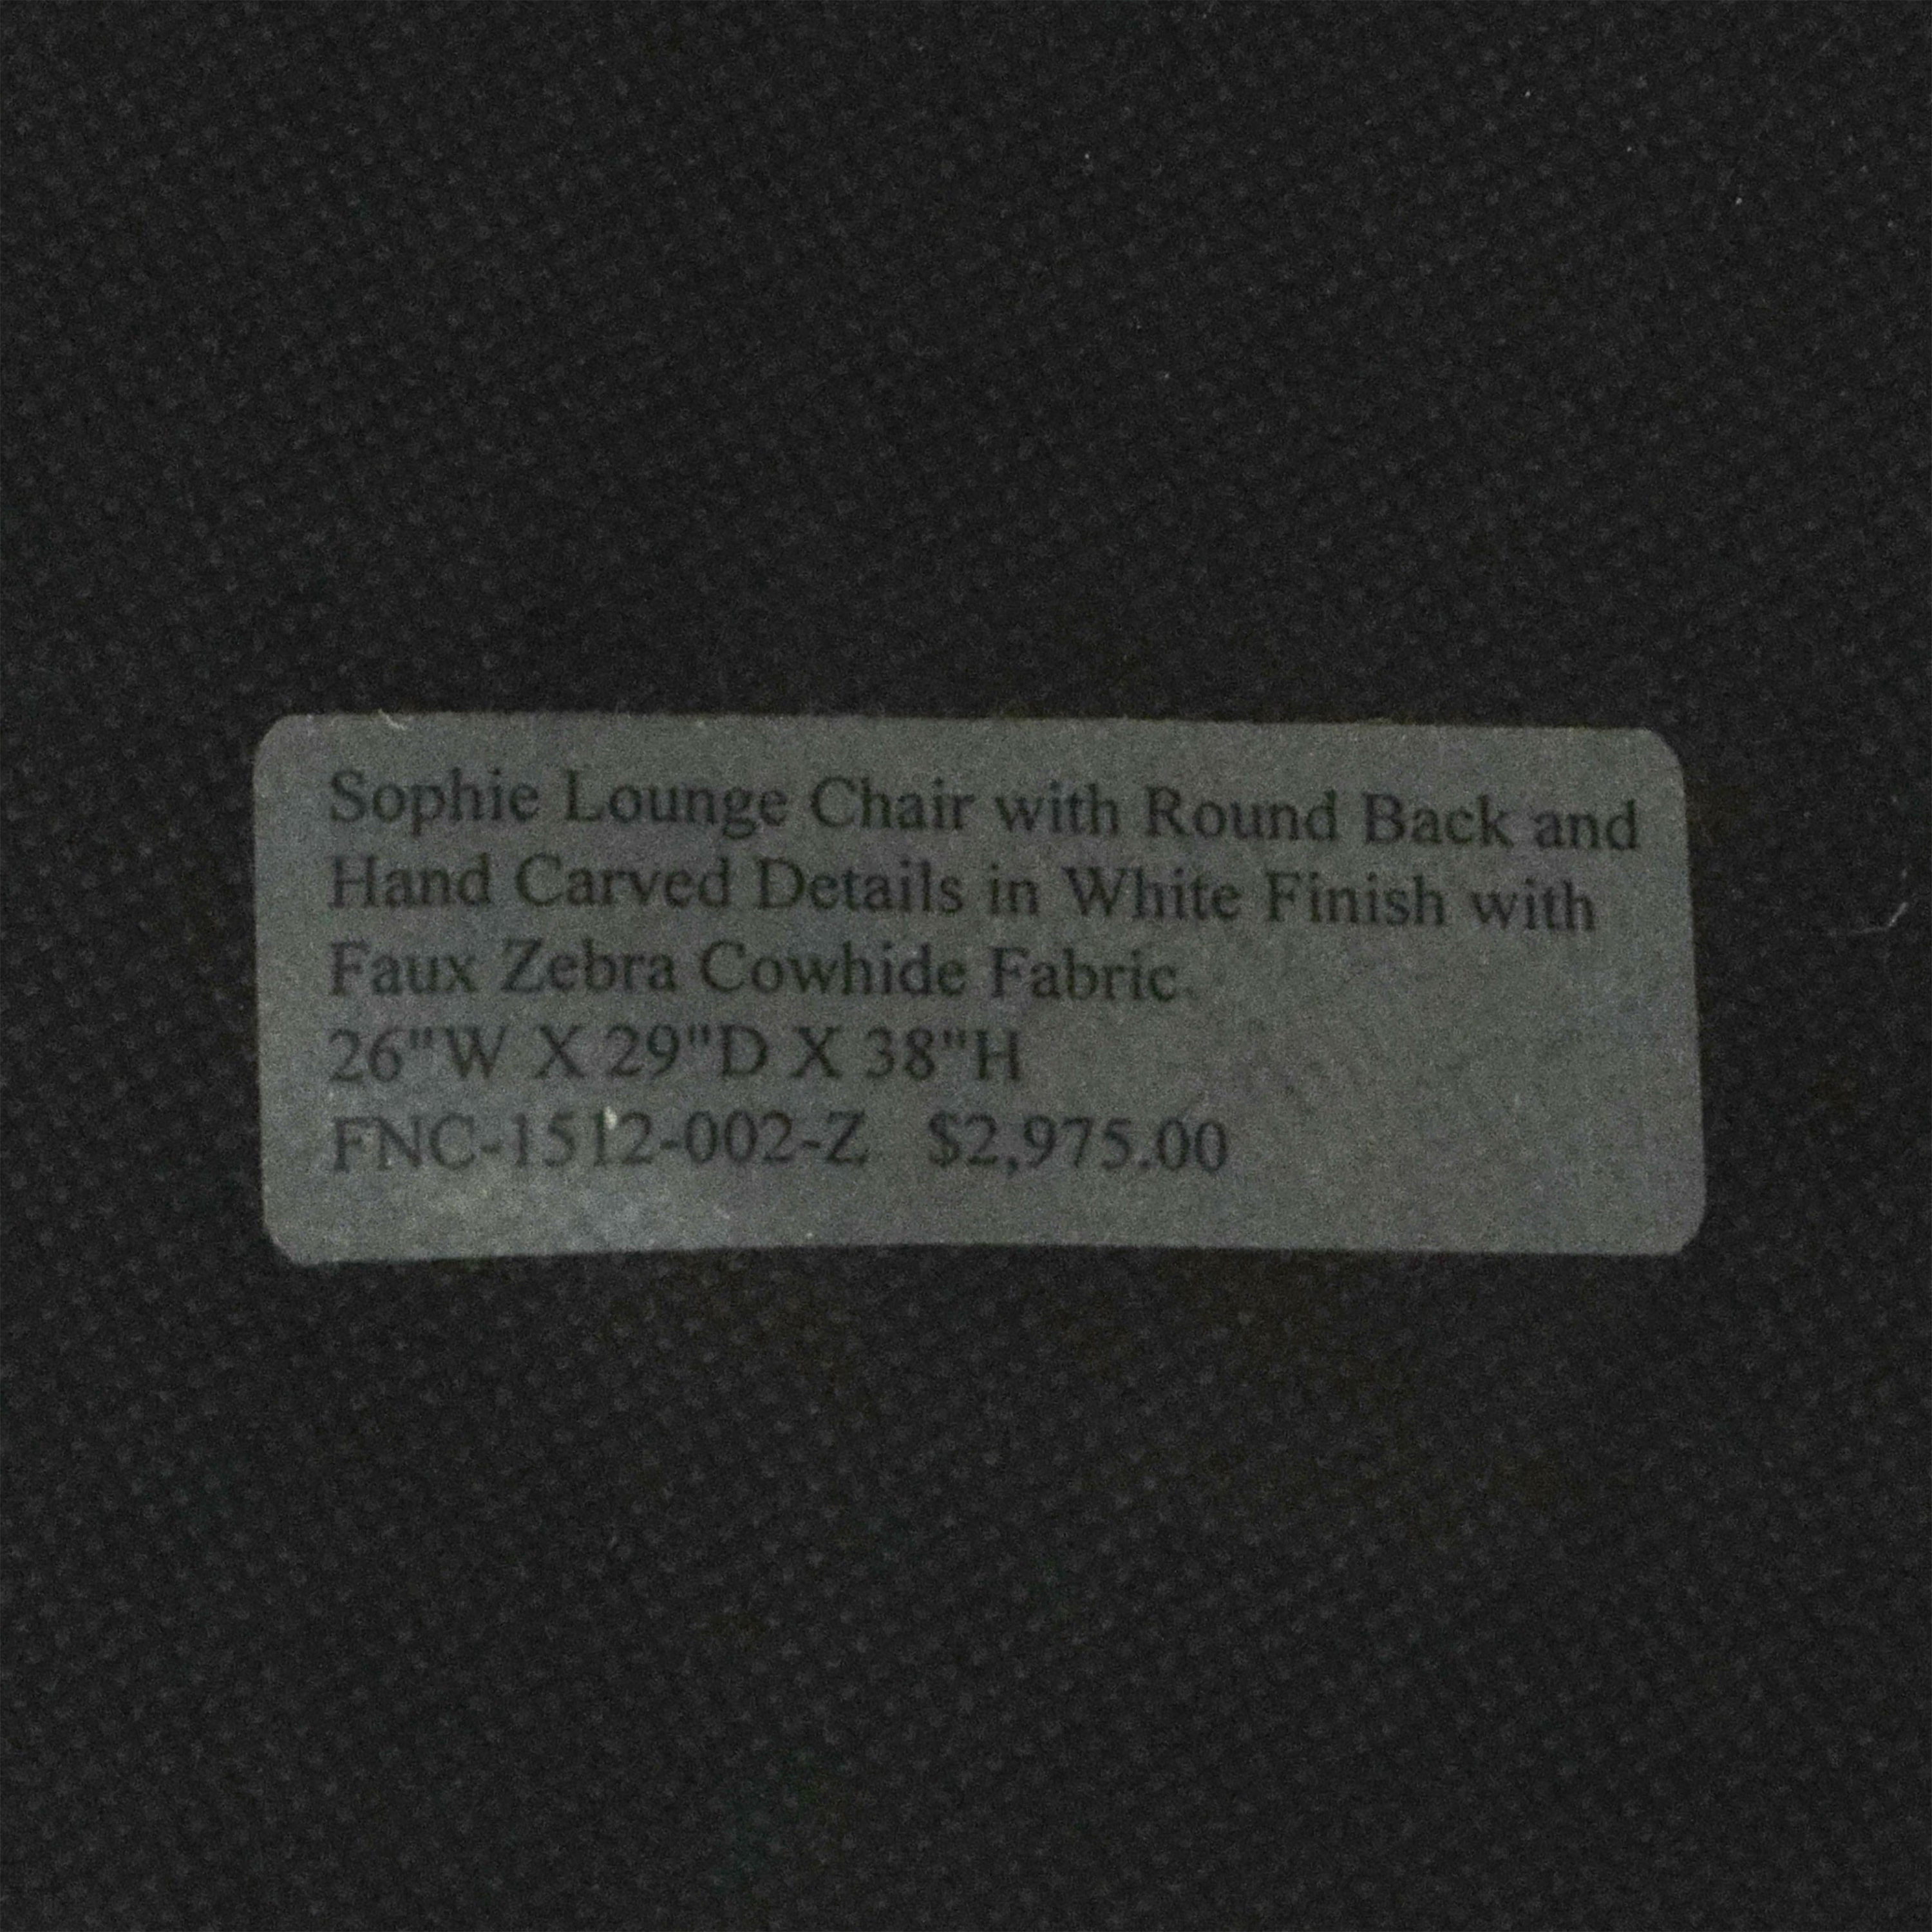 Oly Studio Oly Studio Sophie Lounge Chair brown and white